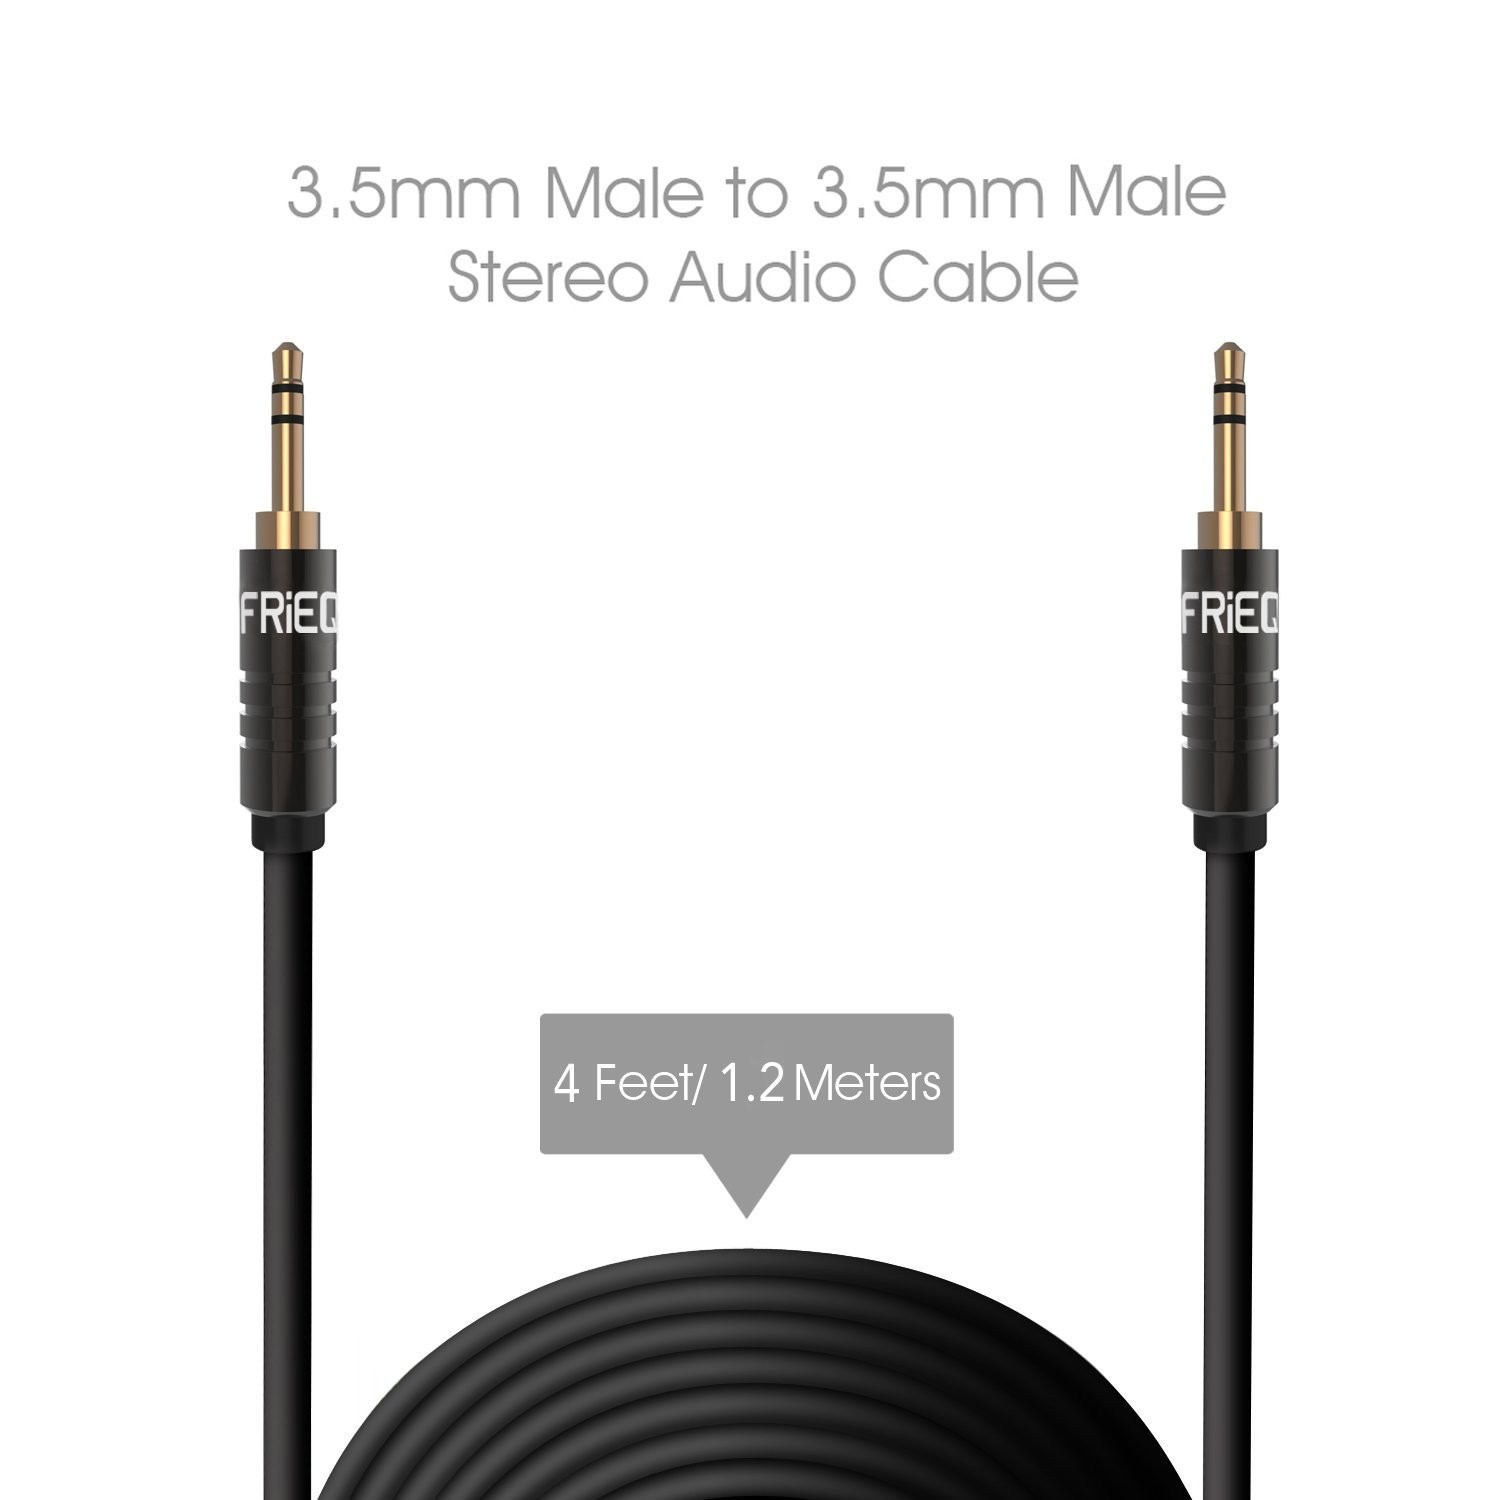 FRiEQ 3.5mm Male To Male Car and Home Stereo TPE Cable Audio Cable (4 Feet/1.2M) Fits Over Tablet & Smart Phone Cases For Apple iPad, iPhone, iPod, Samsung, Android, MP3 Players - Black (Plug will be Fully Seated with Phone Case On), B00WTZMAQQ